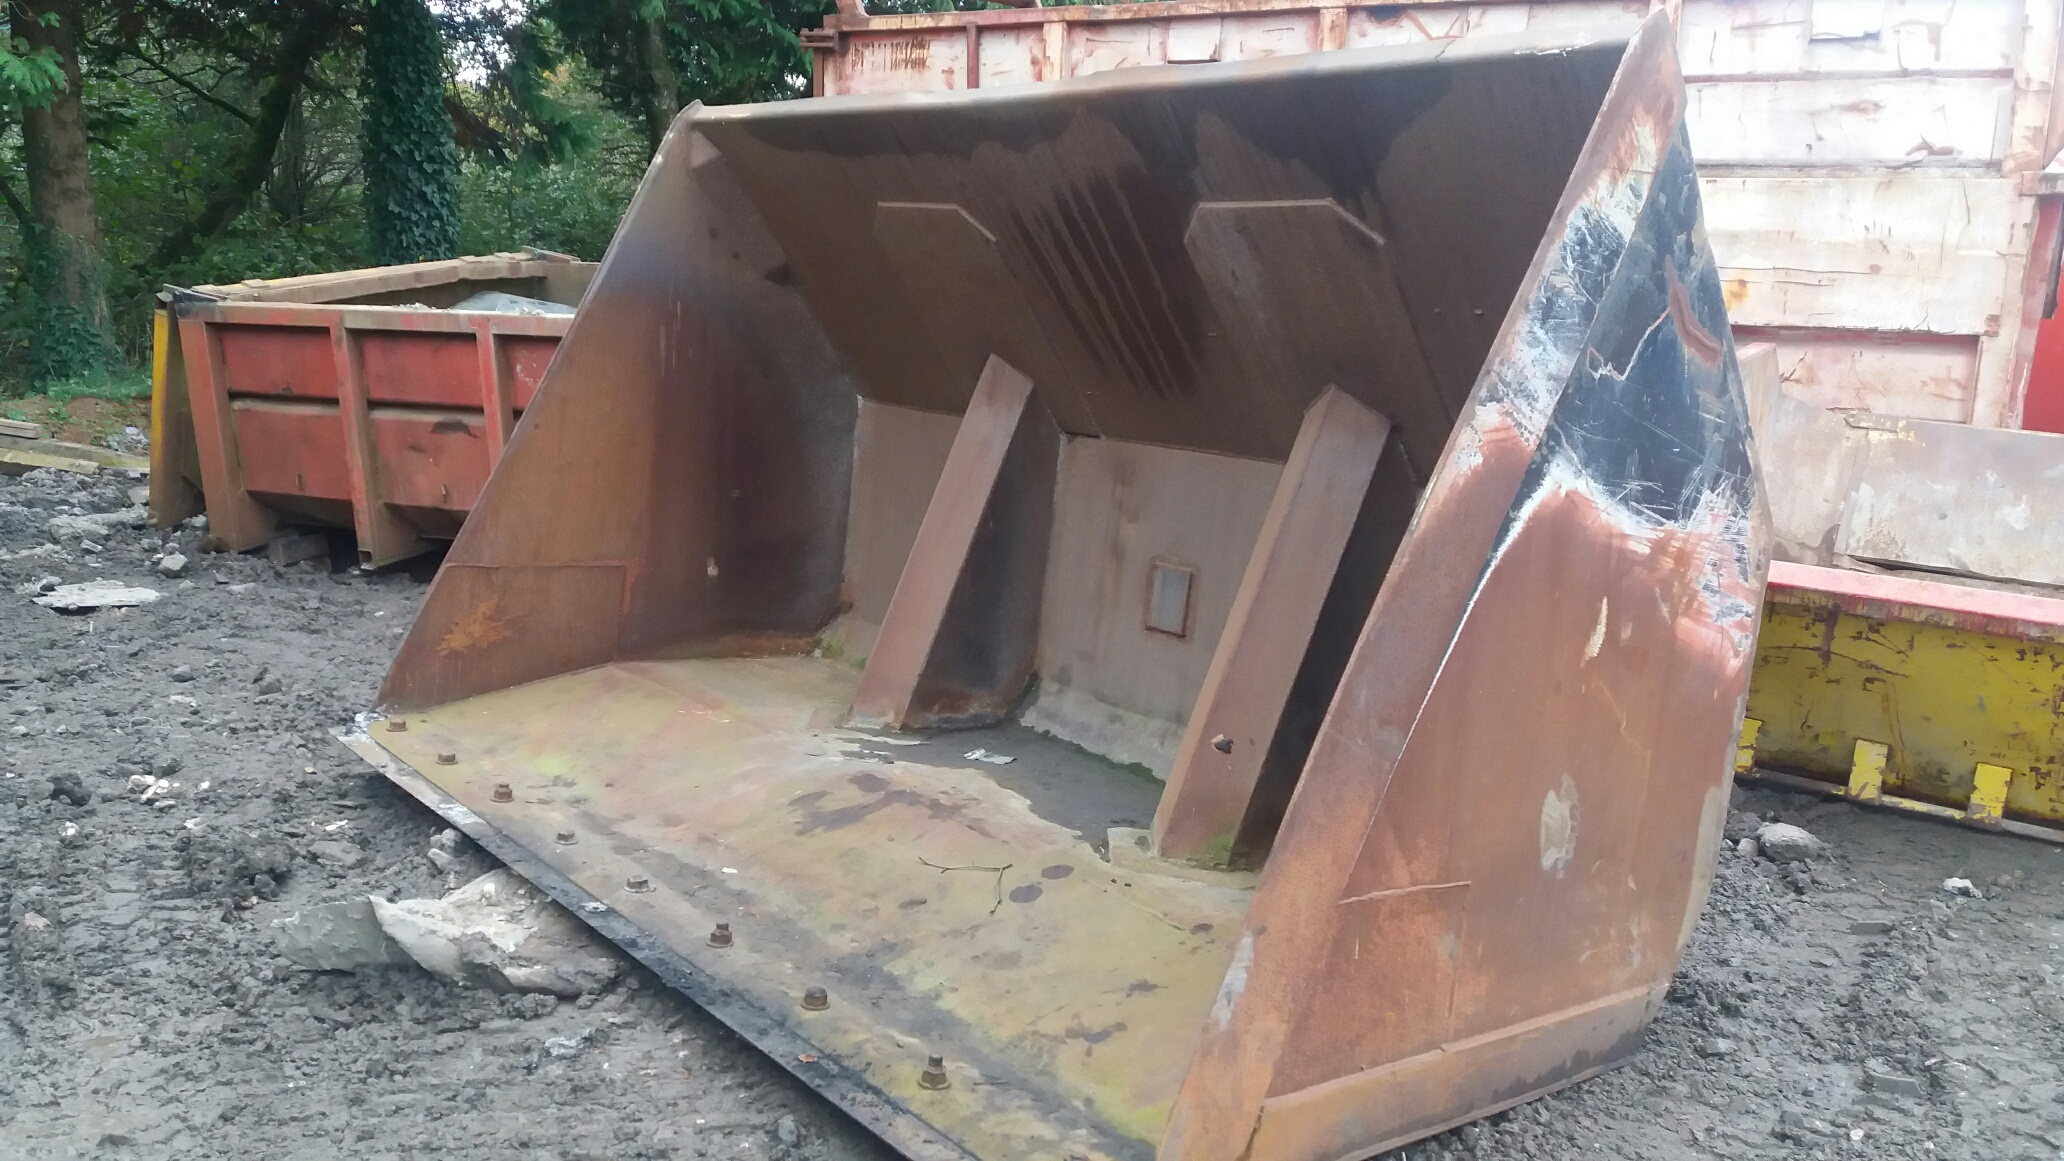 RPM 1461 Toe-Tip Bucket BS Toe-Tip Bucket For Sale / Hire UK